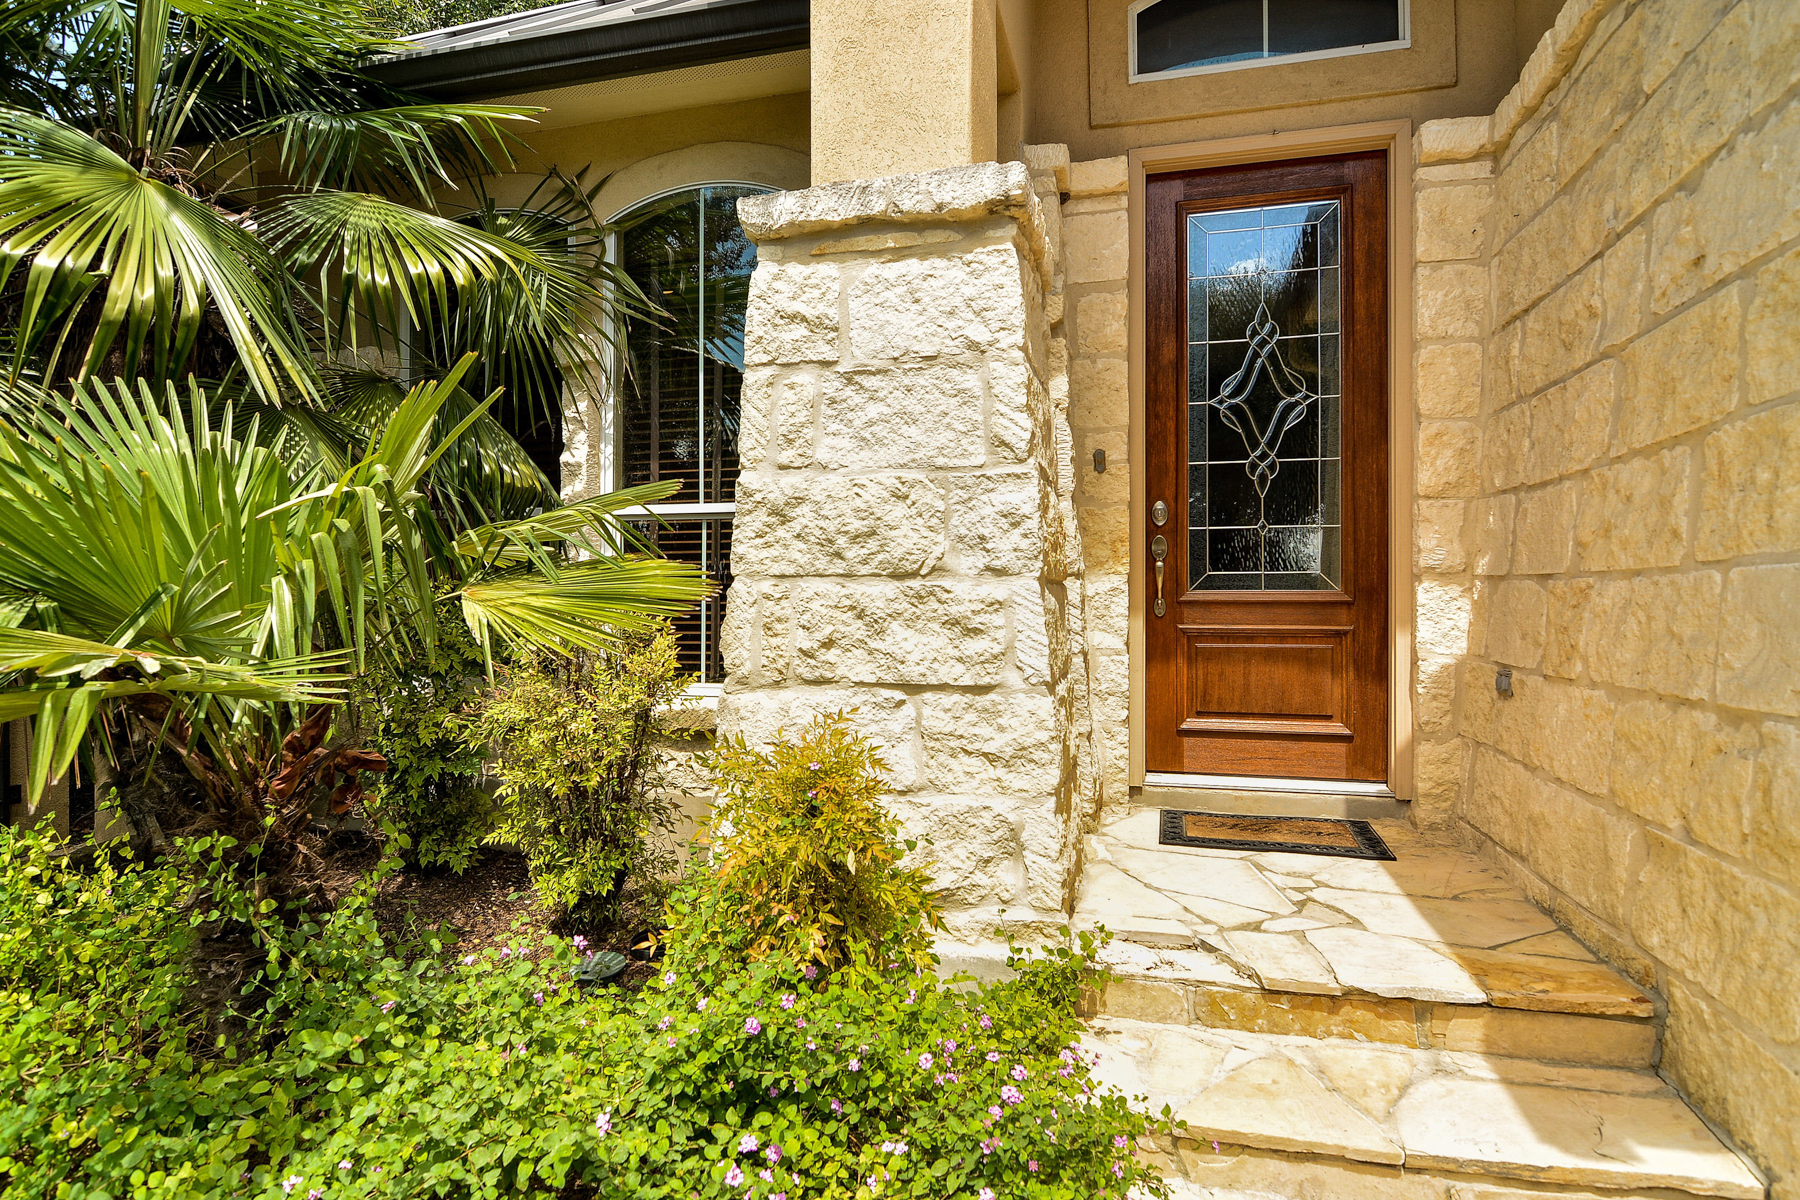 Additional photo for property listing at Gorgeous Gem in The Dominion 8 Worthsham Dr San Antonio, Texas 78257 Estados Unidos